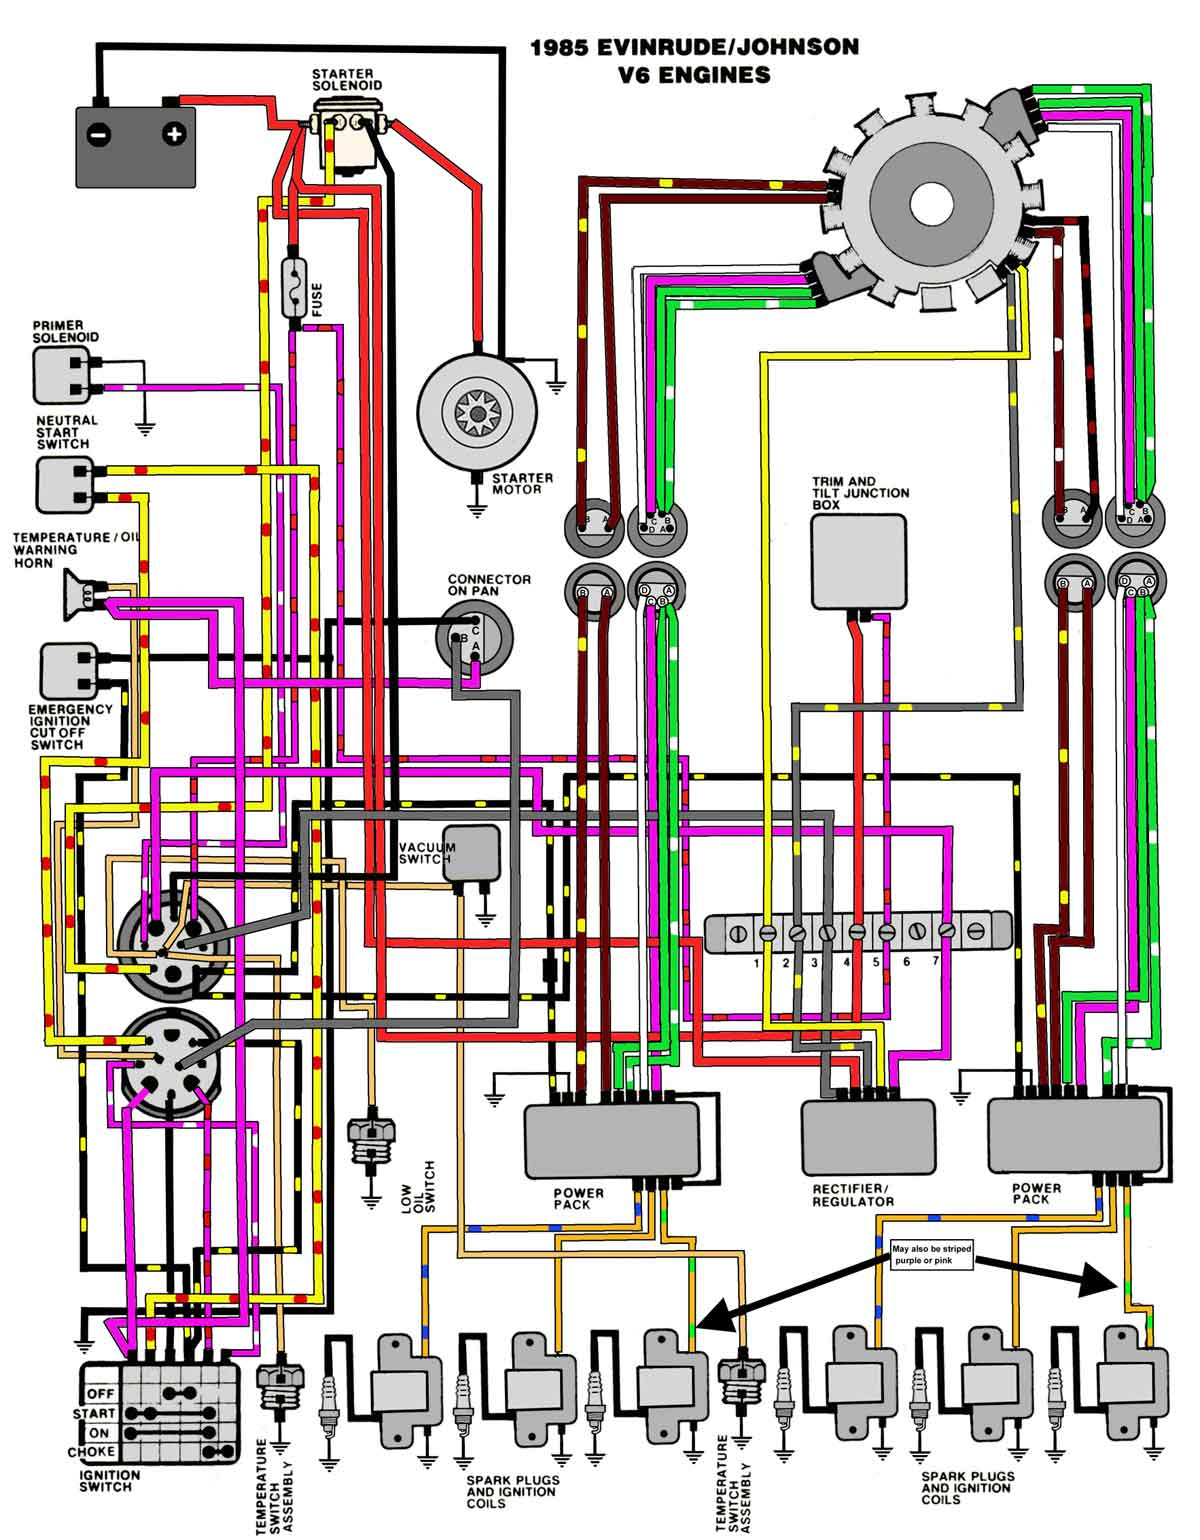 85_V6 mastertech marine evinrude johnson outboard wiring diagrams wiring diagram for 30 hp johnson motor at mifinder.co